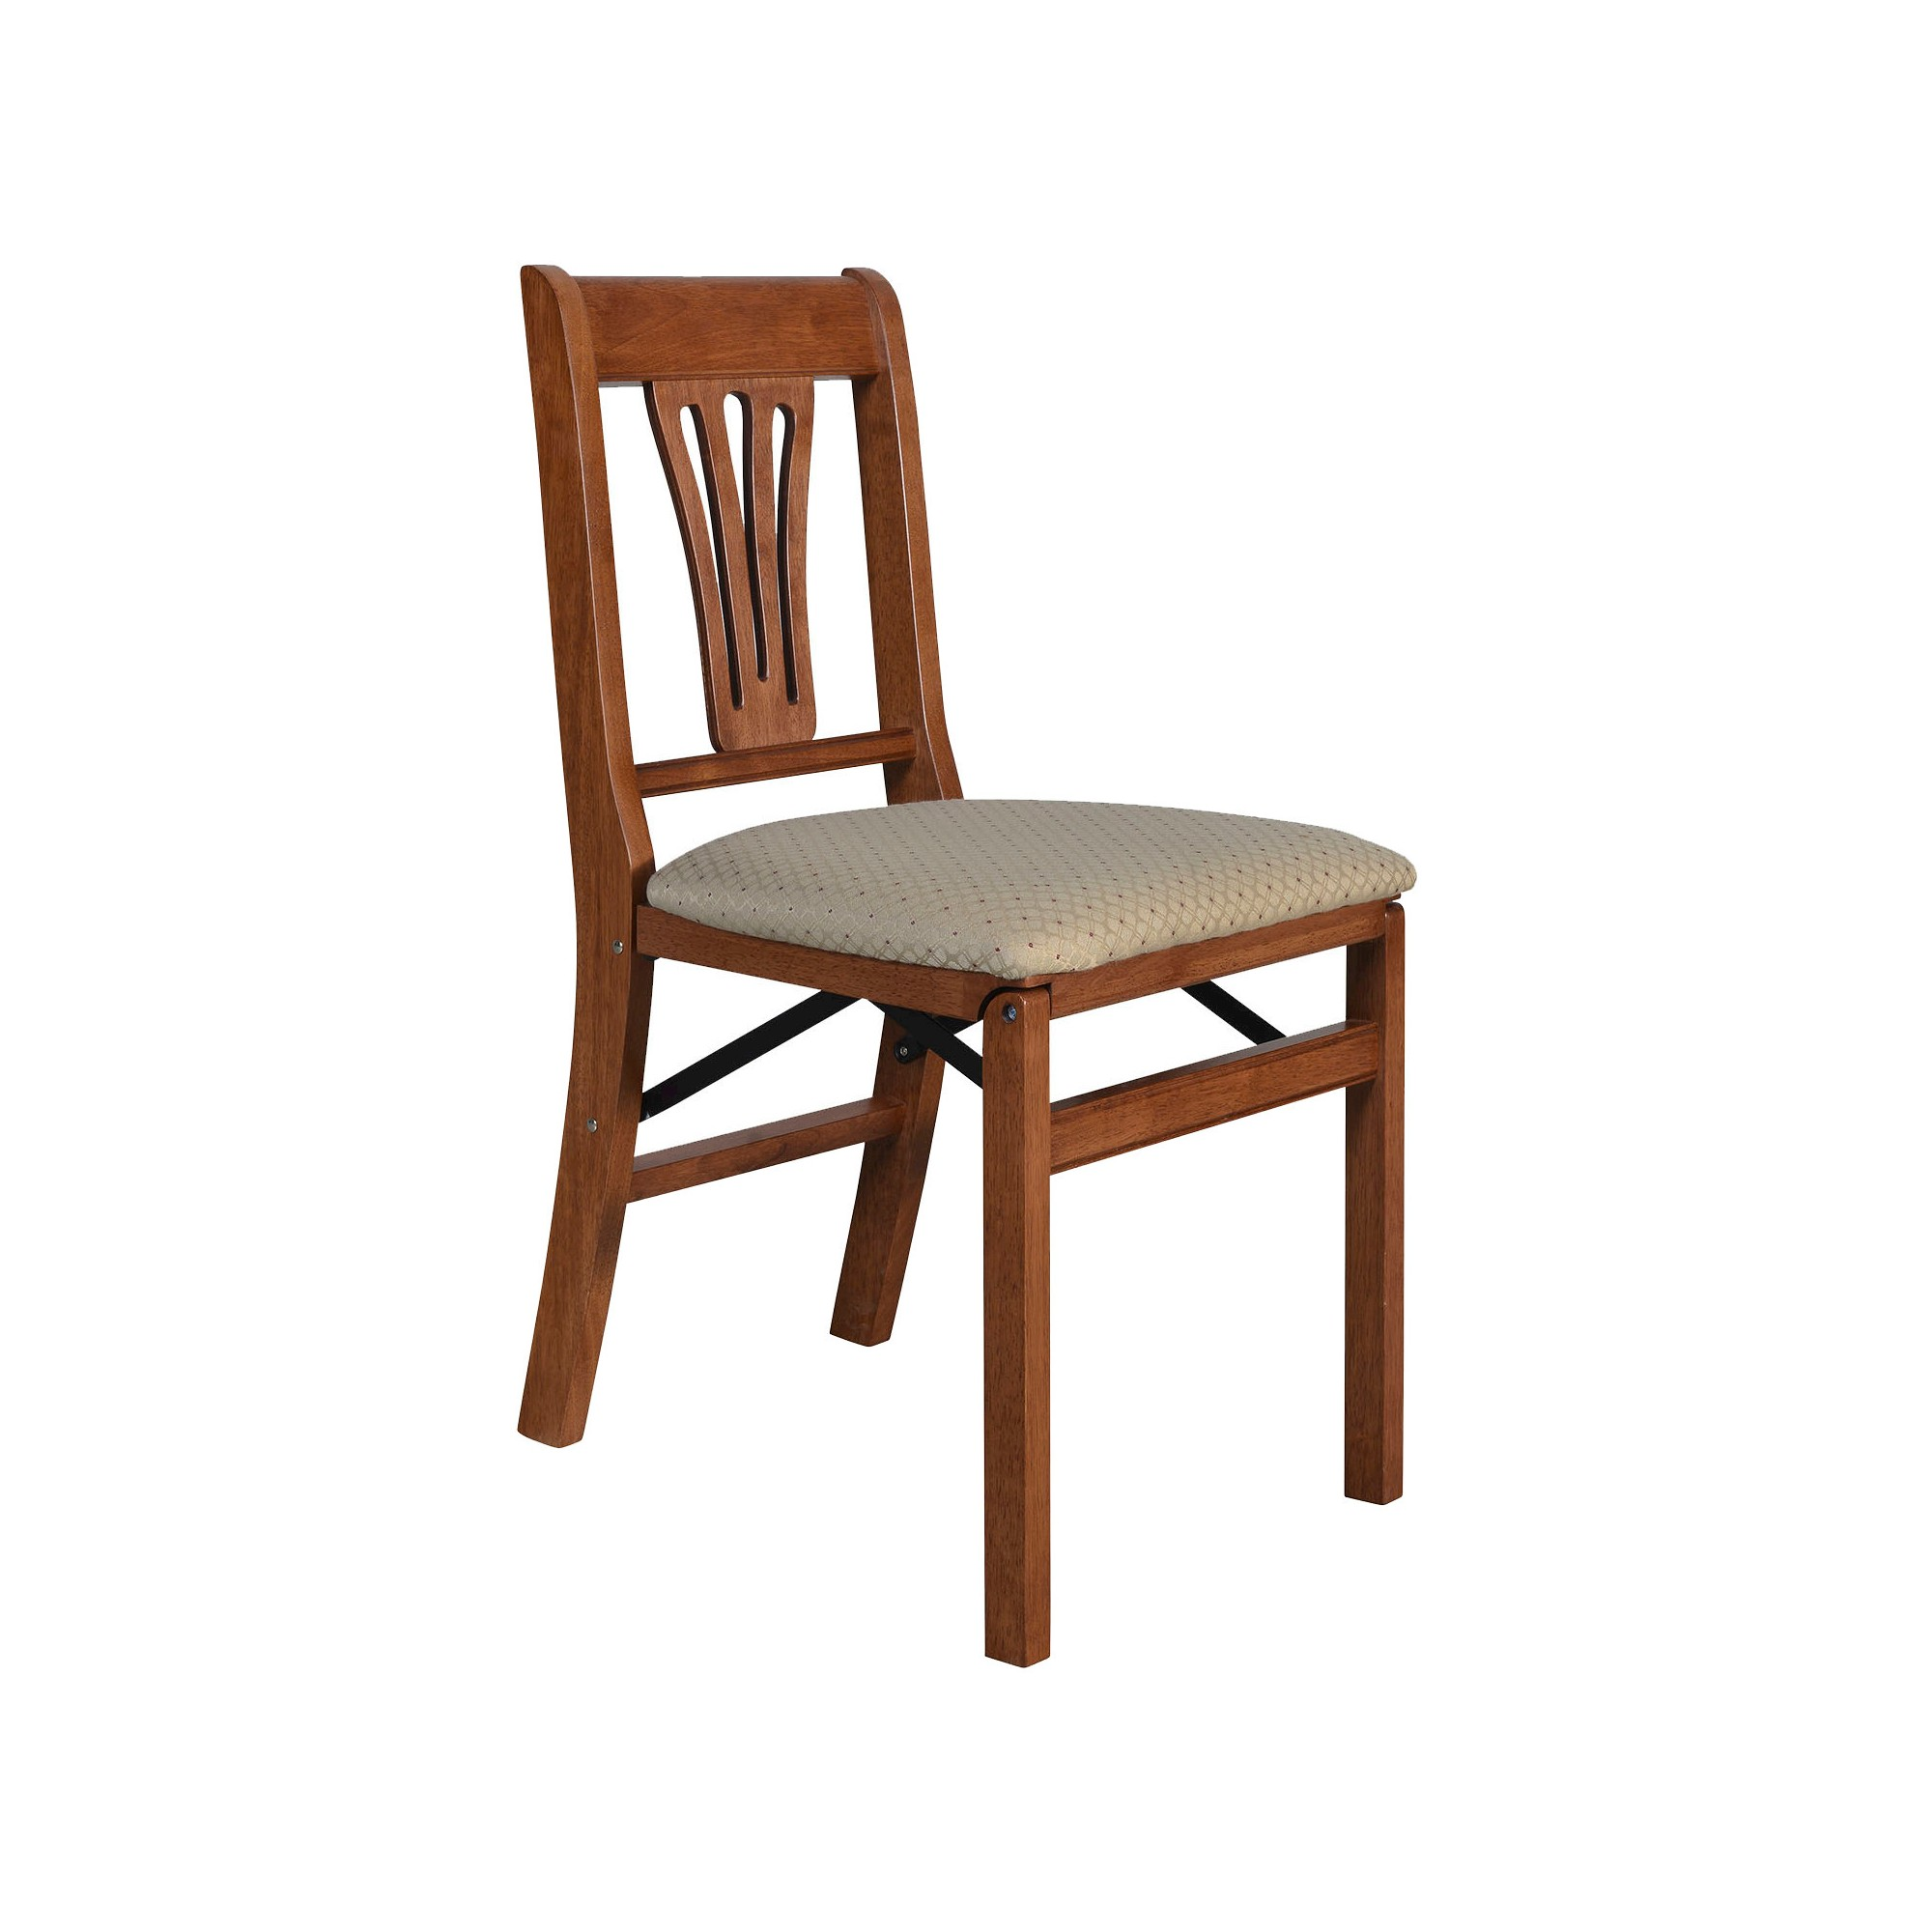 Stakmore Folding Chair with Blush Seat - Cherry (Set of 2) , Brown